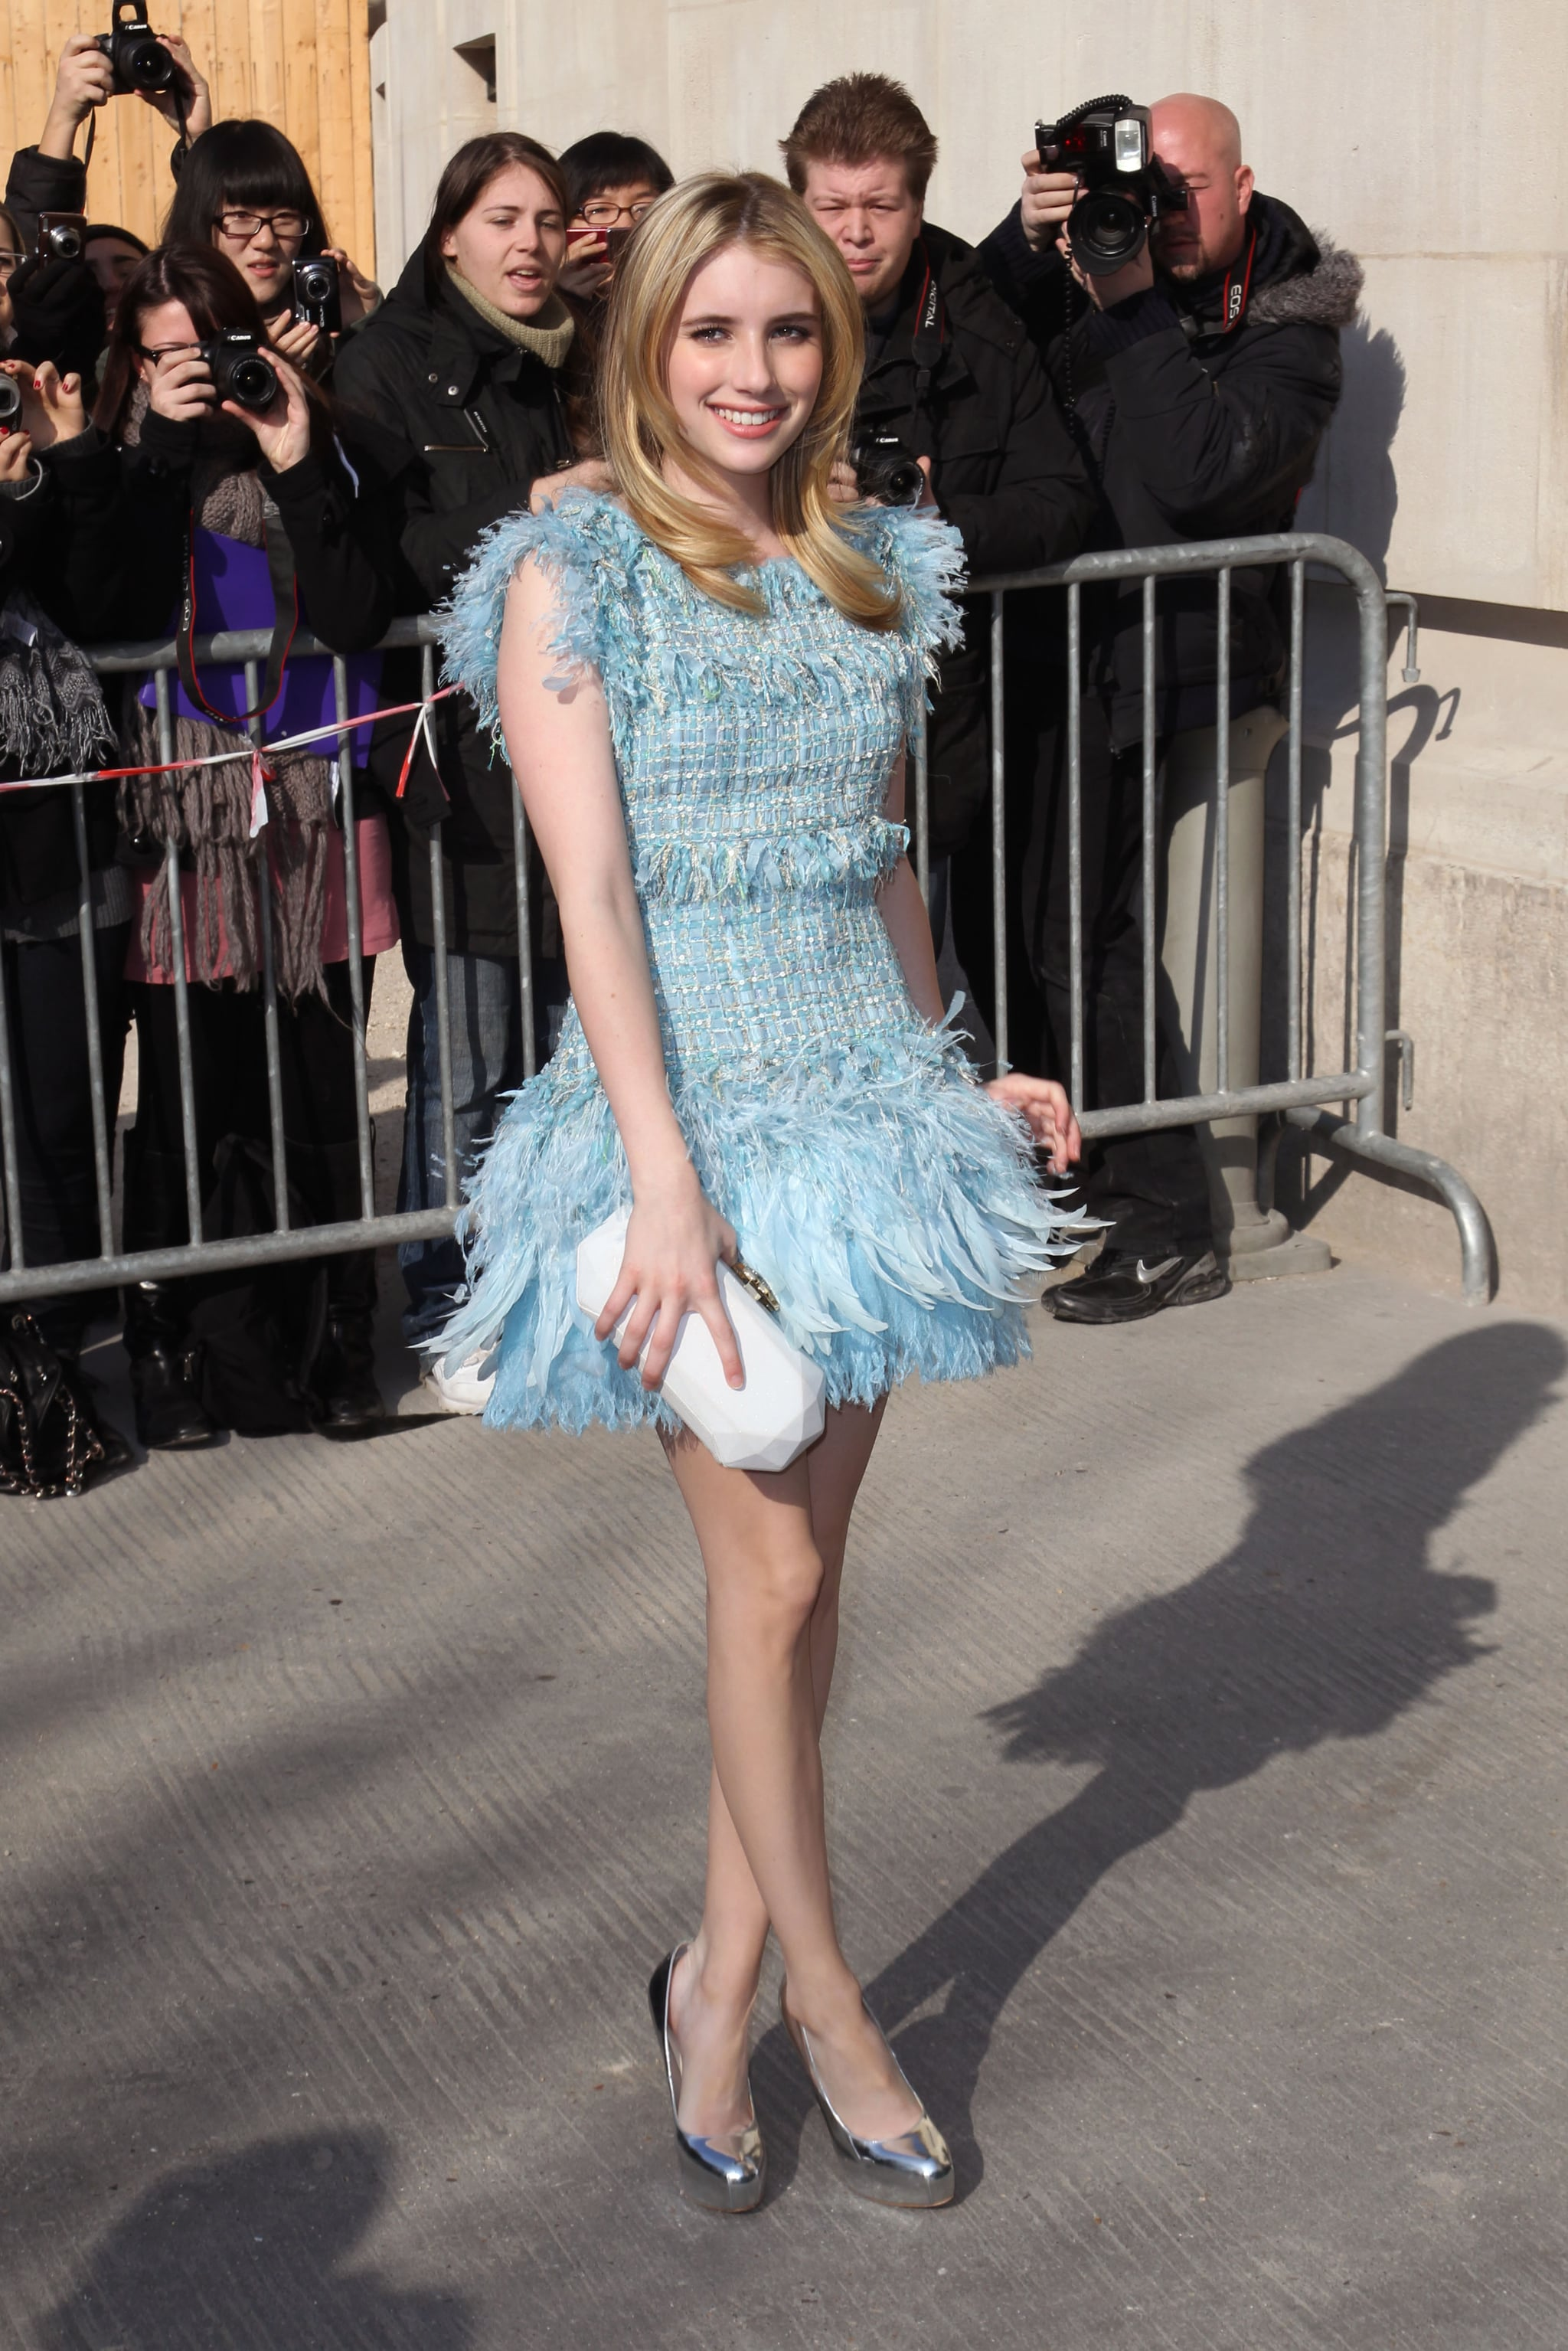 Emma got flirty in a fringed Chanel dress for Paris Fashion Week in 2011.